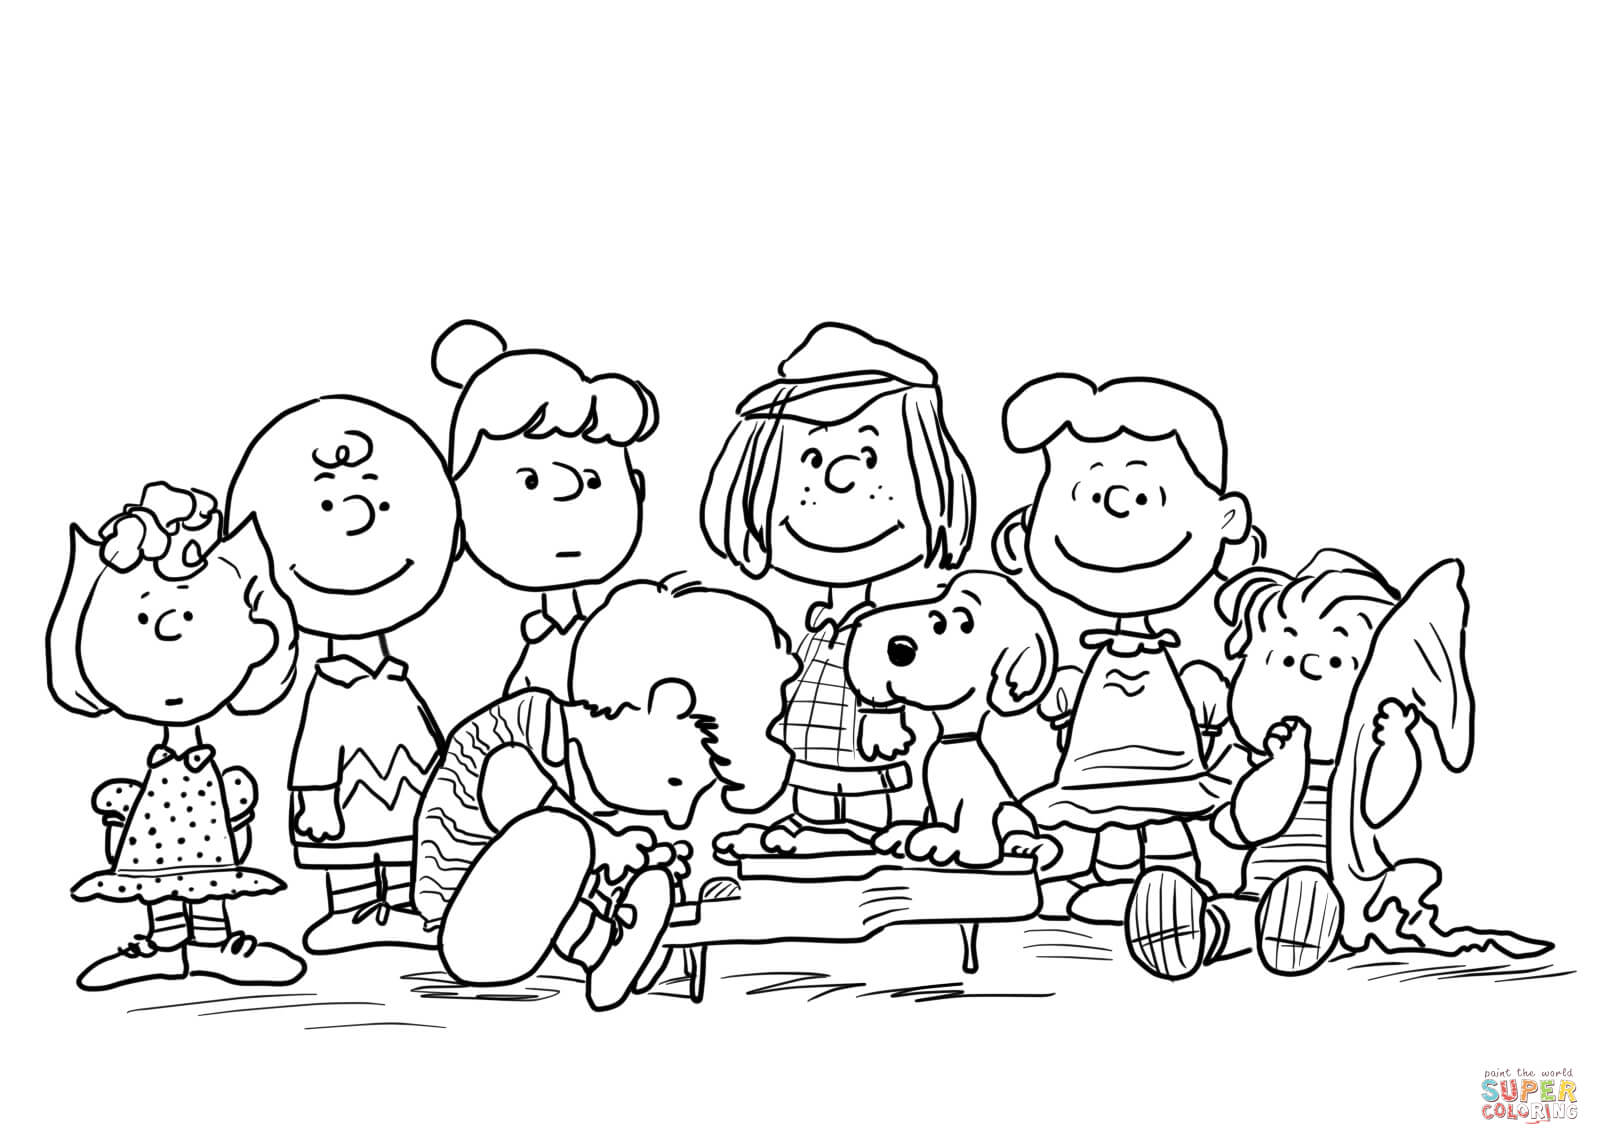 Peanuts Characters coloring page.